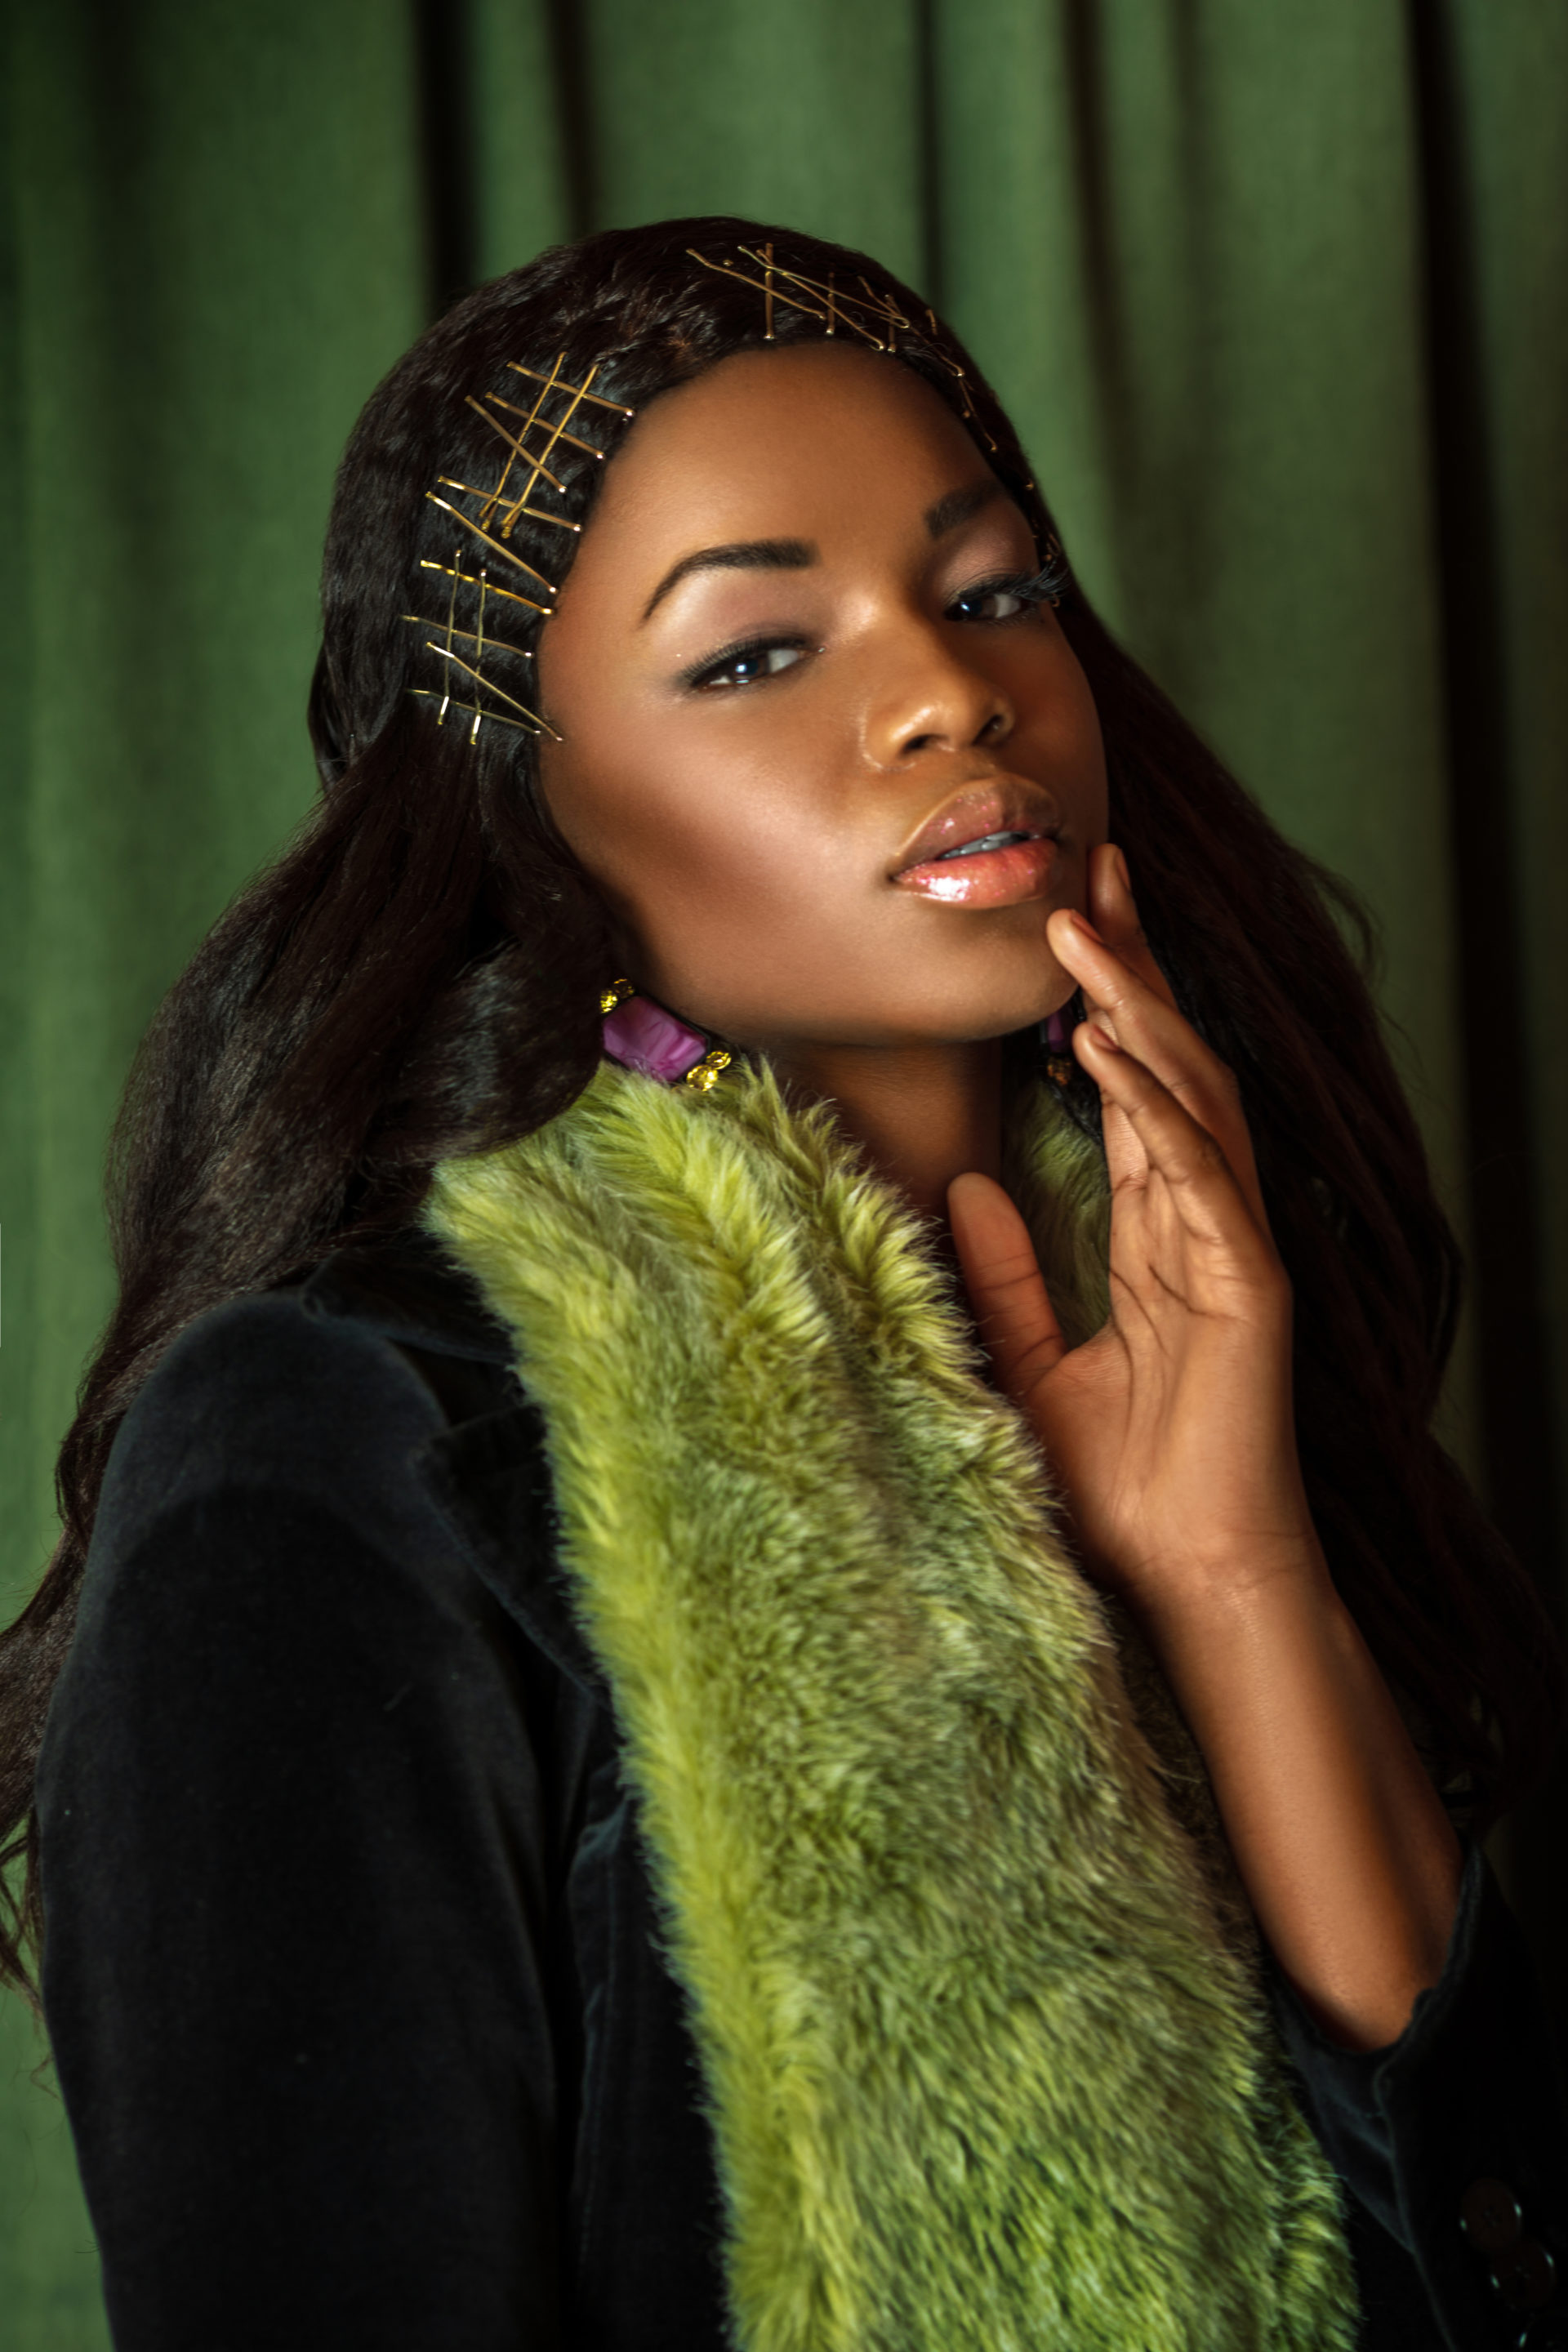 Sensual Black Lady with Green Fur Coat